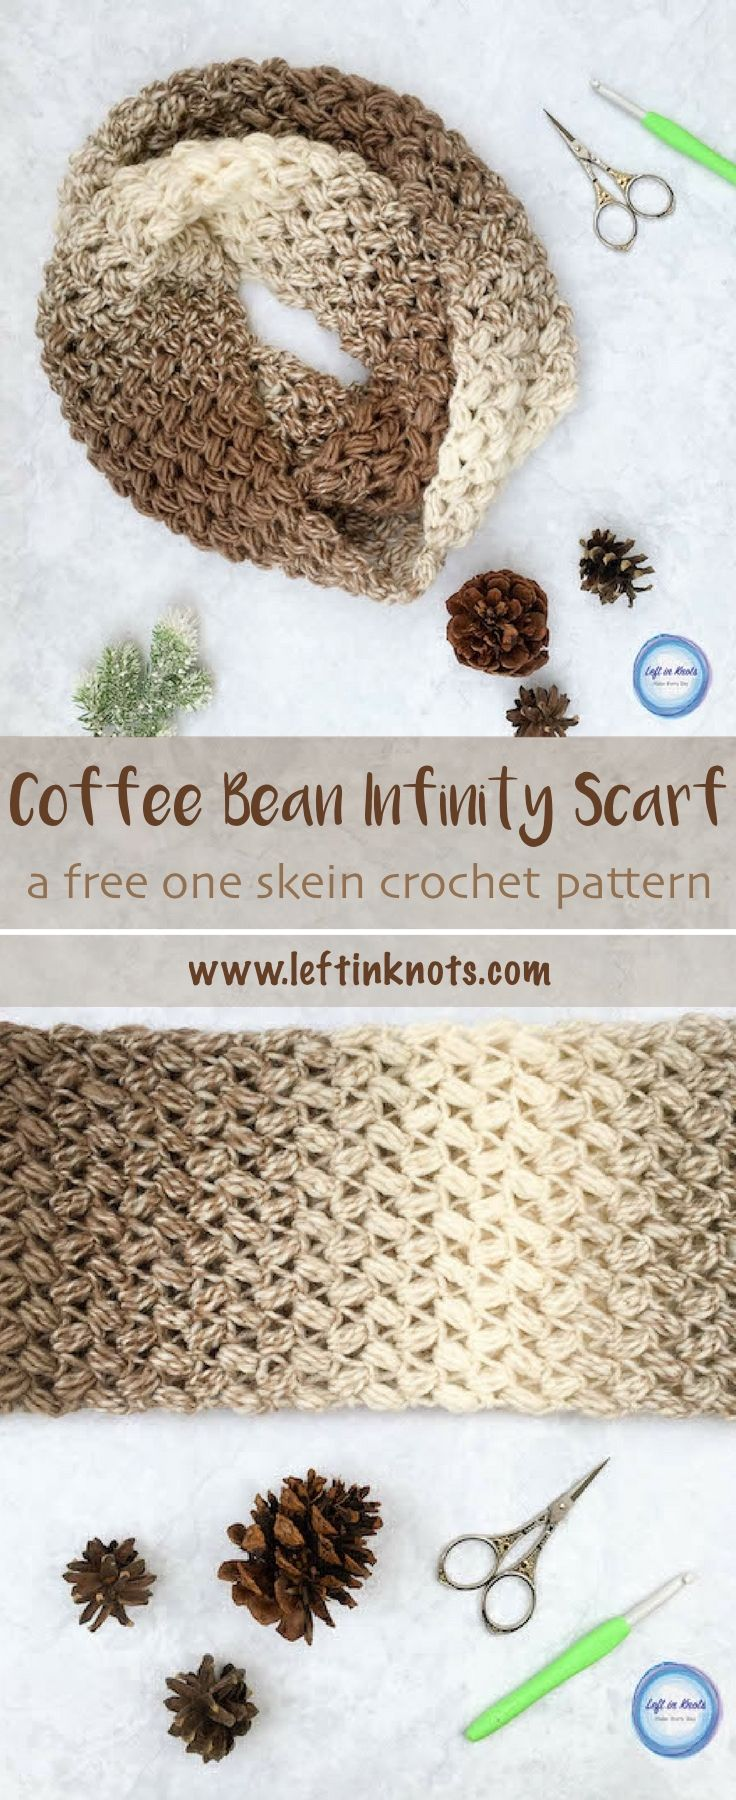 This free crochet pattern uses the cloud-like texture of Lion Brand Scarfie yarn combined with the bean stitch to make the most beautiful and comfortable infinity scarf.  The Coffee Bean Infinity Scarf takes just one skein of Lion Brand Scarfie yarn and will be a perfect addition to your last-minute gift list this holiday season!  This is the third free crochet pattern of my Seven Days of Scarfie pattern collection. #crochet #freecrochetpatterns #infinityscarf